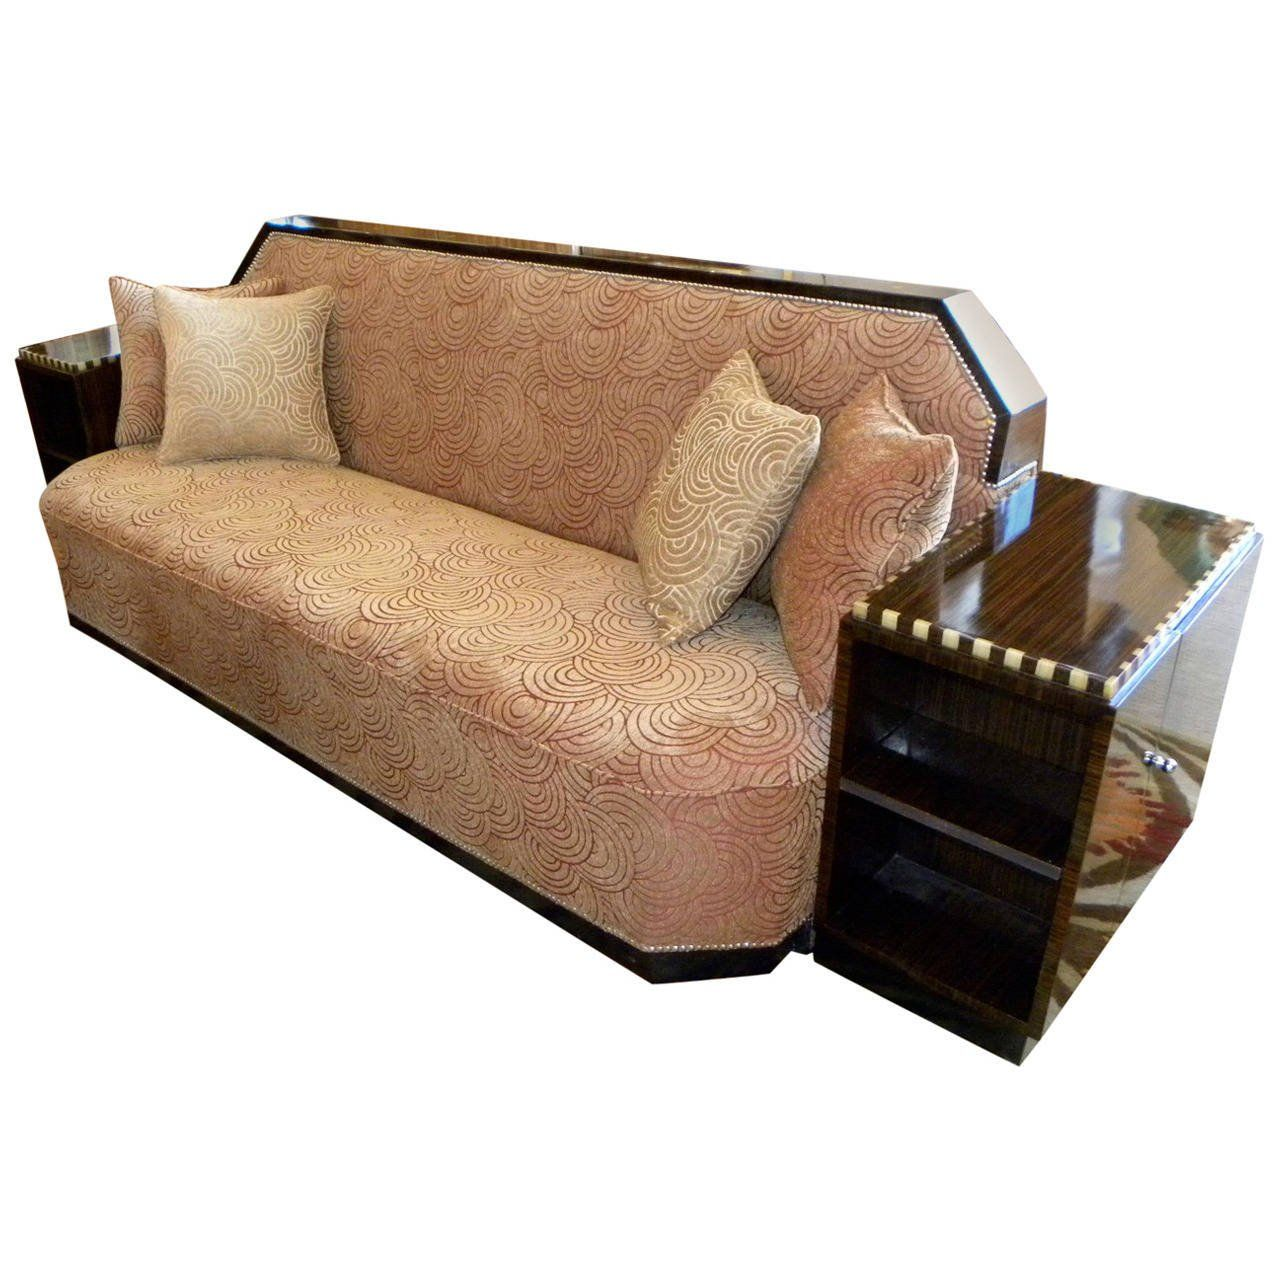 View This Item And Discover Similar Sectional Sofas For Sale At   Talk  About Comfort! This Glamorous Art Deco Cozy Corner Takes At Home Relaxation  To A New ...